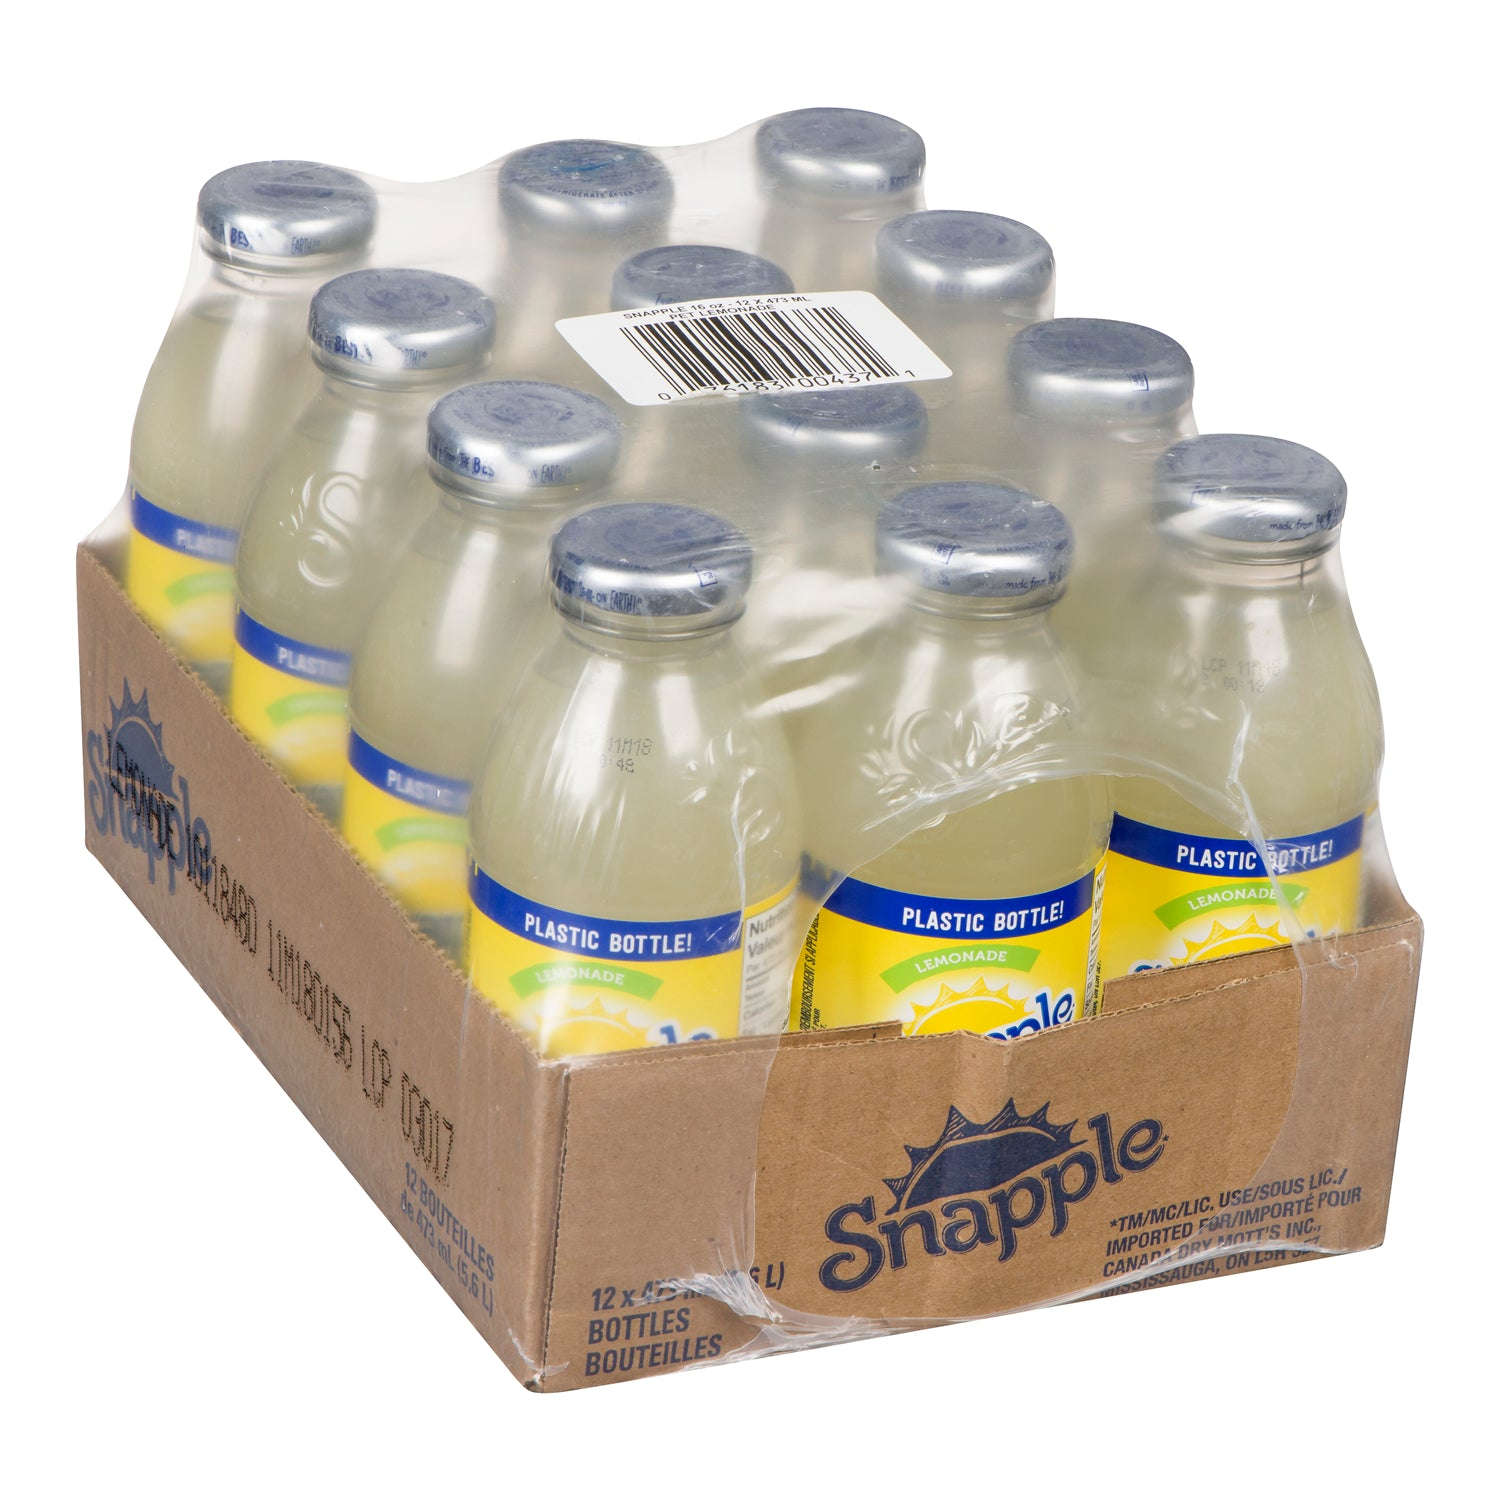 Snapple Lemonade Juice Drink 473 ml - 12 Pack [$1.42/bottle]